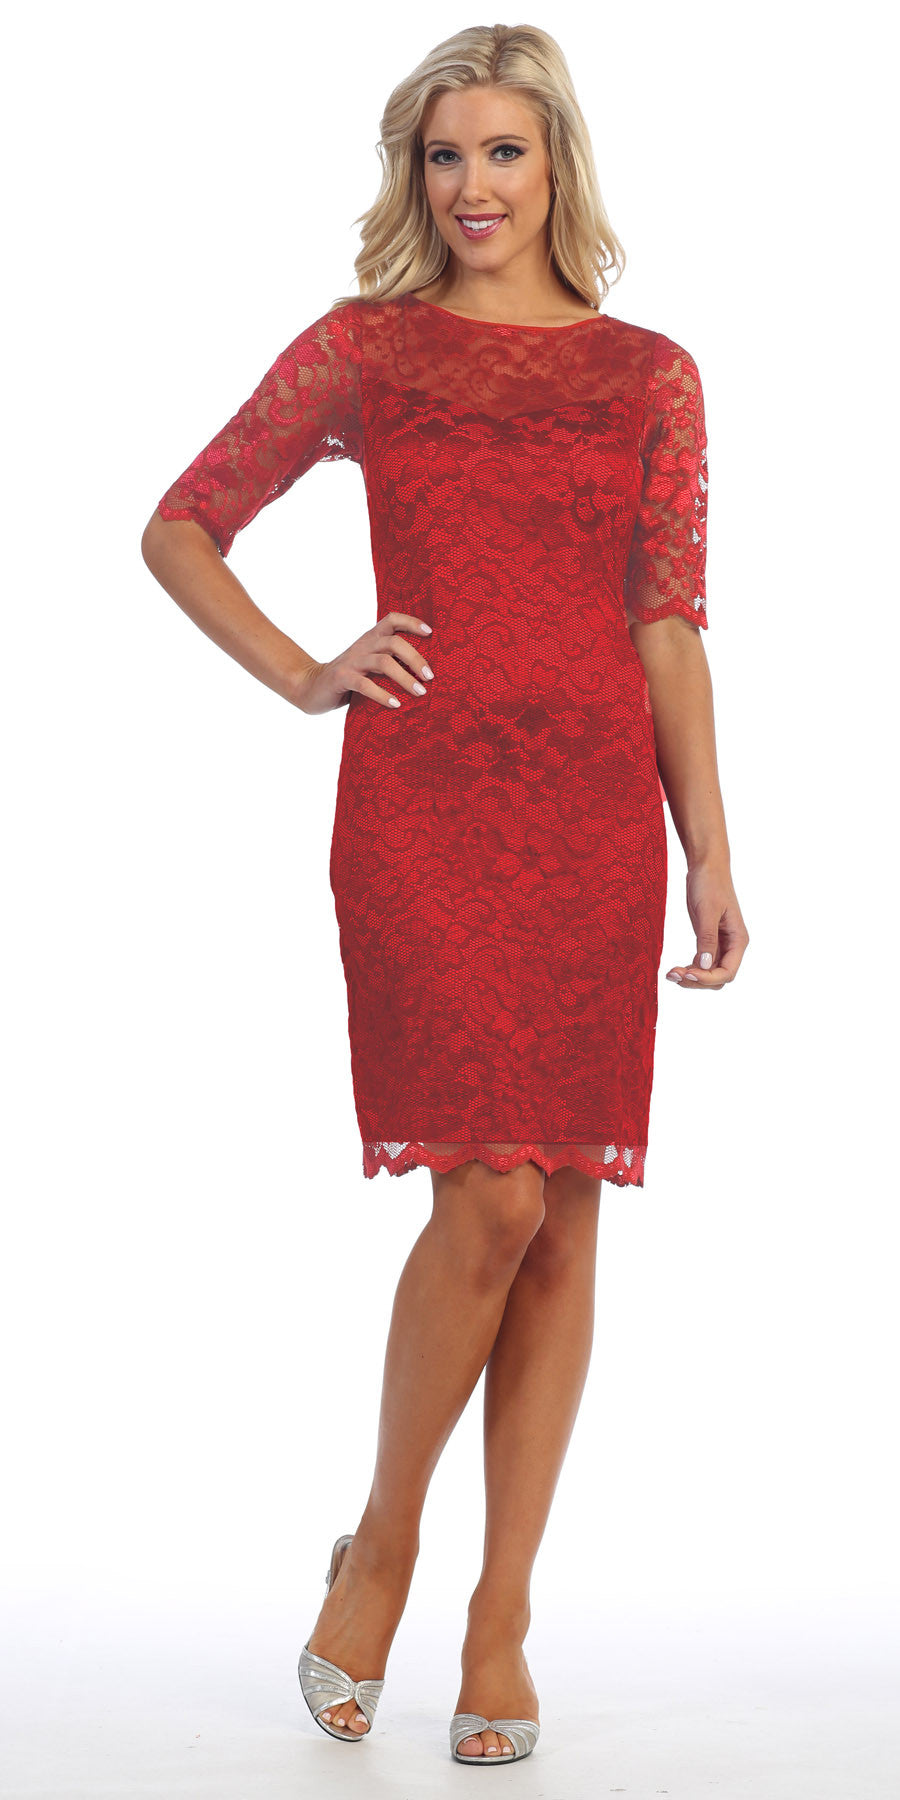 Lace Cocktail Dress Knee Length Red 3/4 Length Sleeves